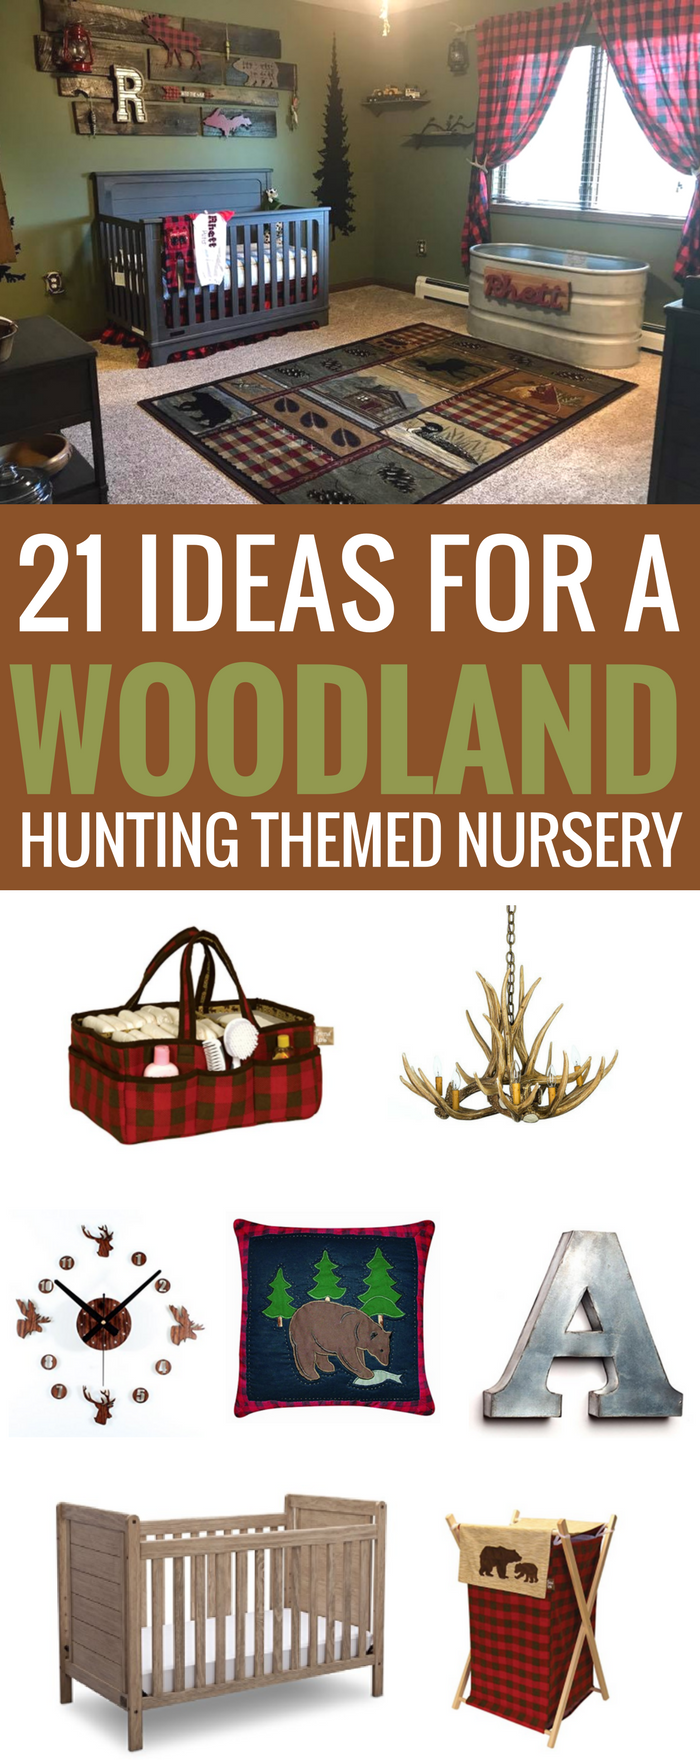 #woodland #forest #nursery Woodland Hunting Themed Nursery, lumberjack, buffalo check plaid